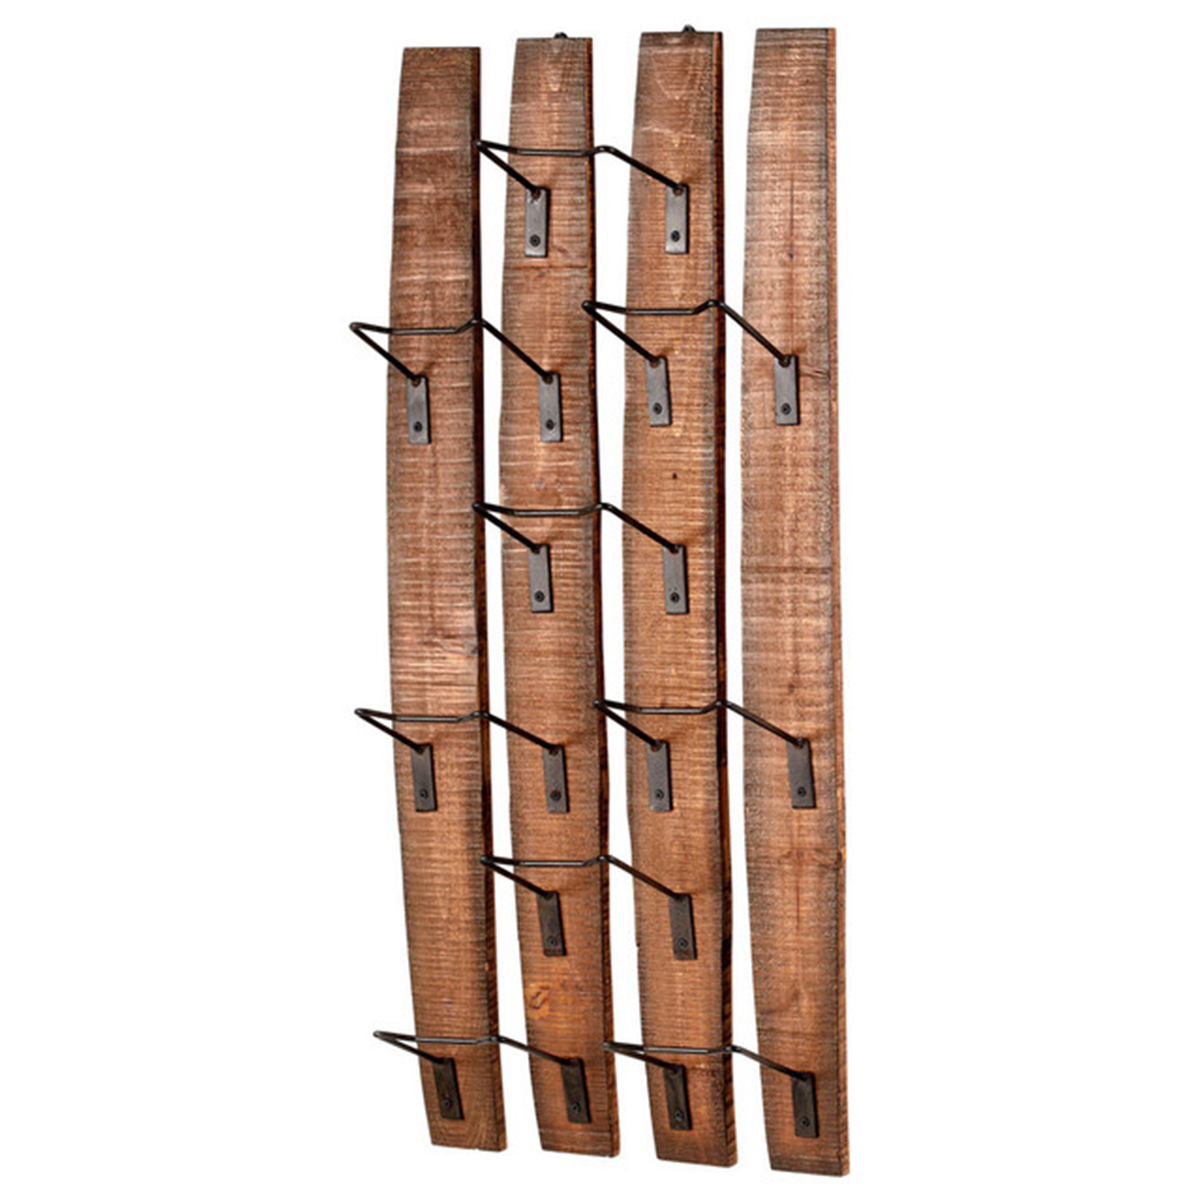 Wooden wine holder with wire racks photo